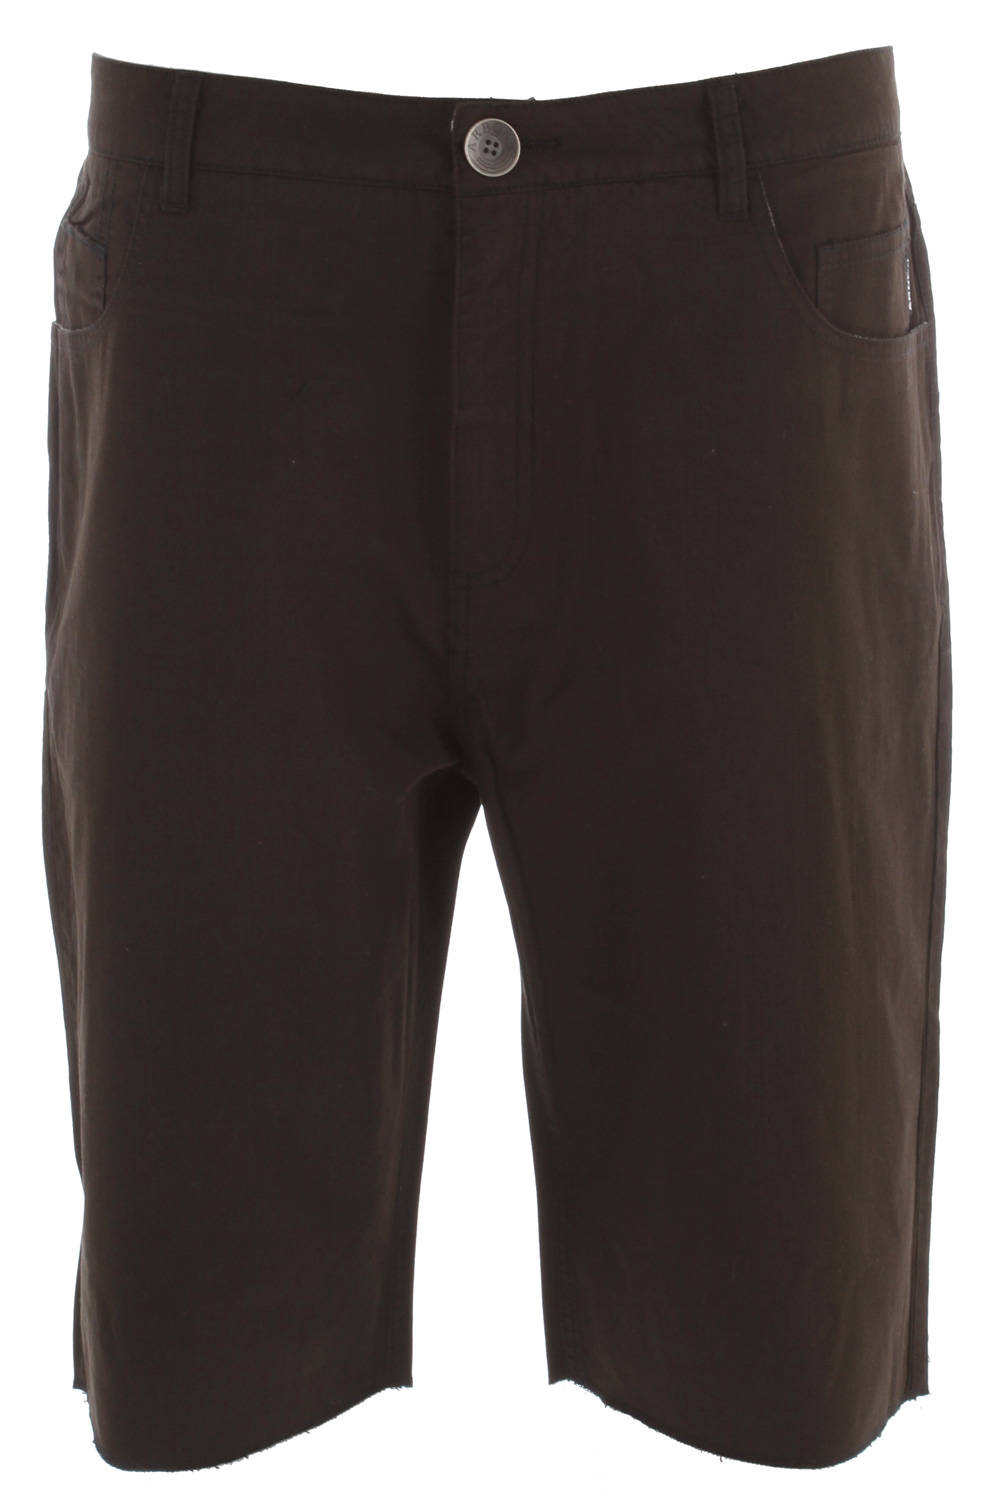 "Key Features of the Arbor Venice Shorts:  50/50 viscose from bamboo/cotton tapered walkshort  Contrast stitching  Raw bottom hem  23"" outseam - $49.95"